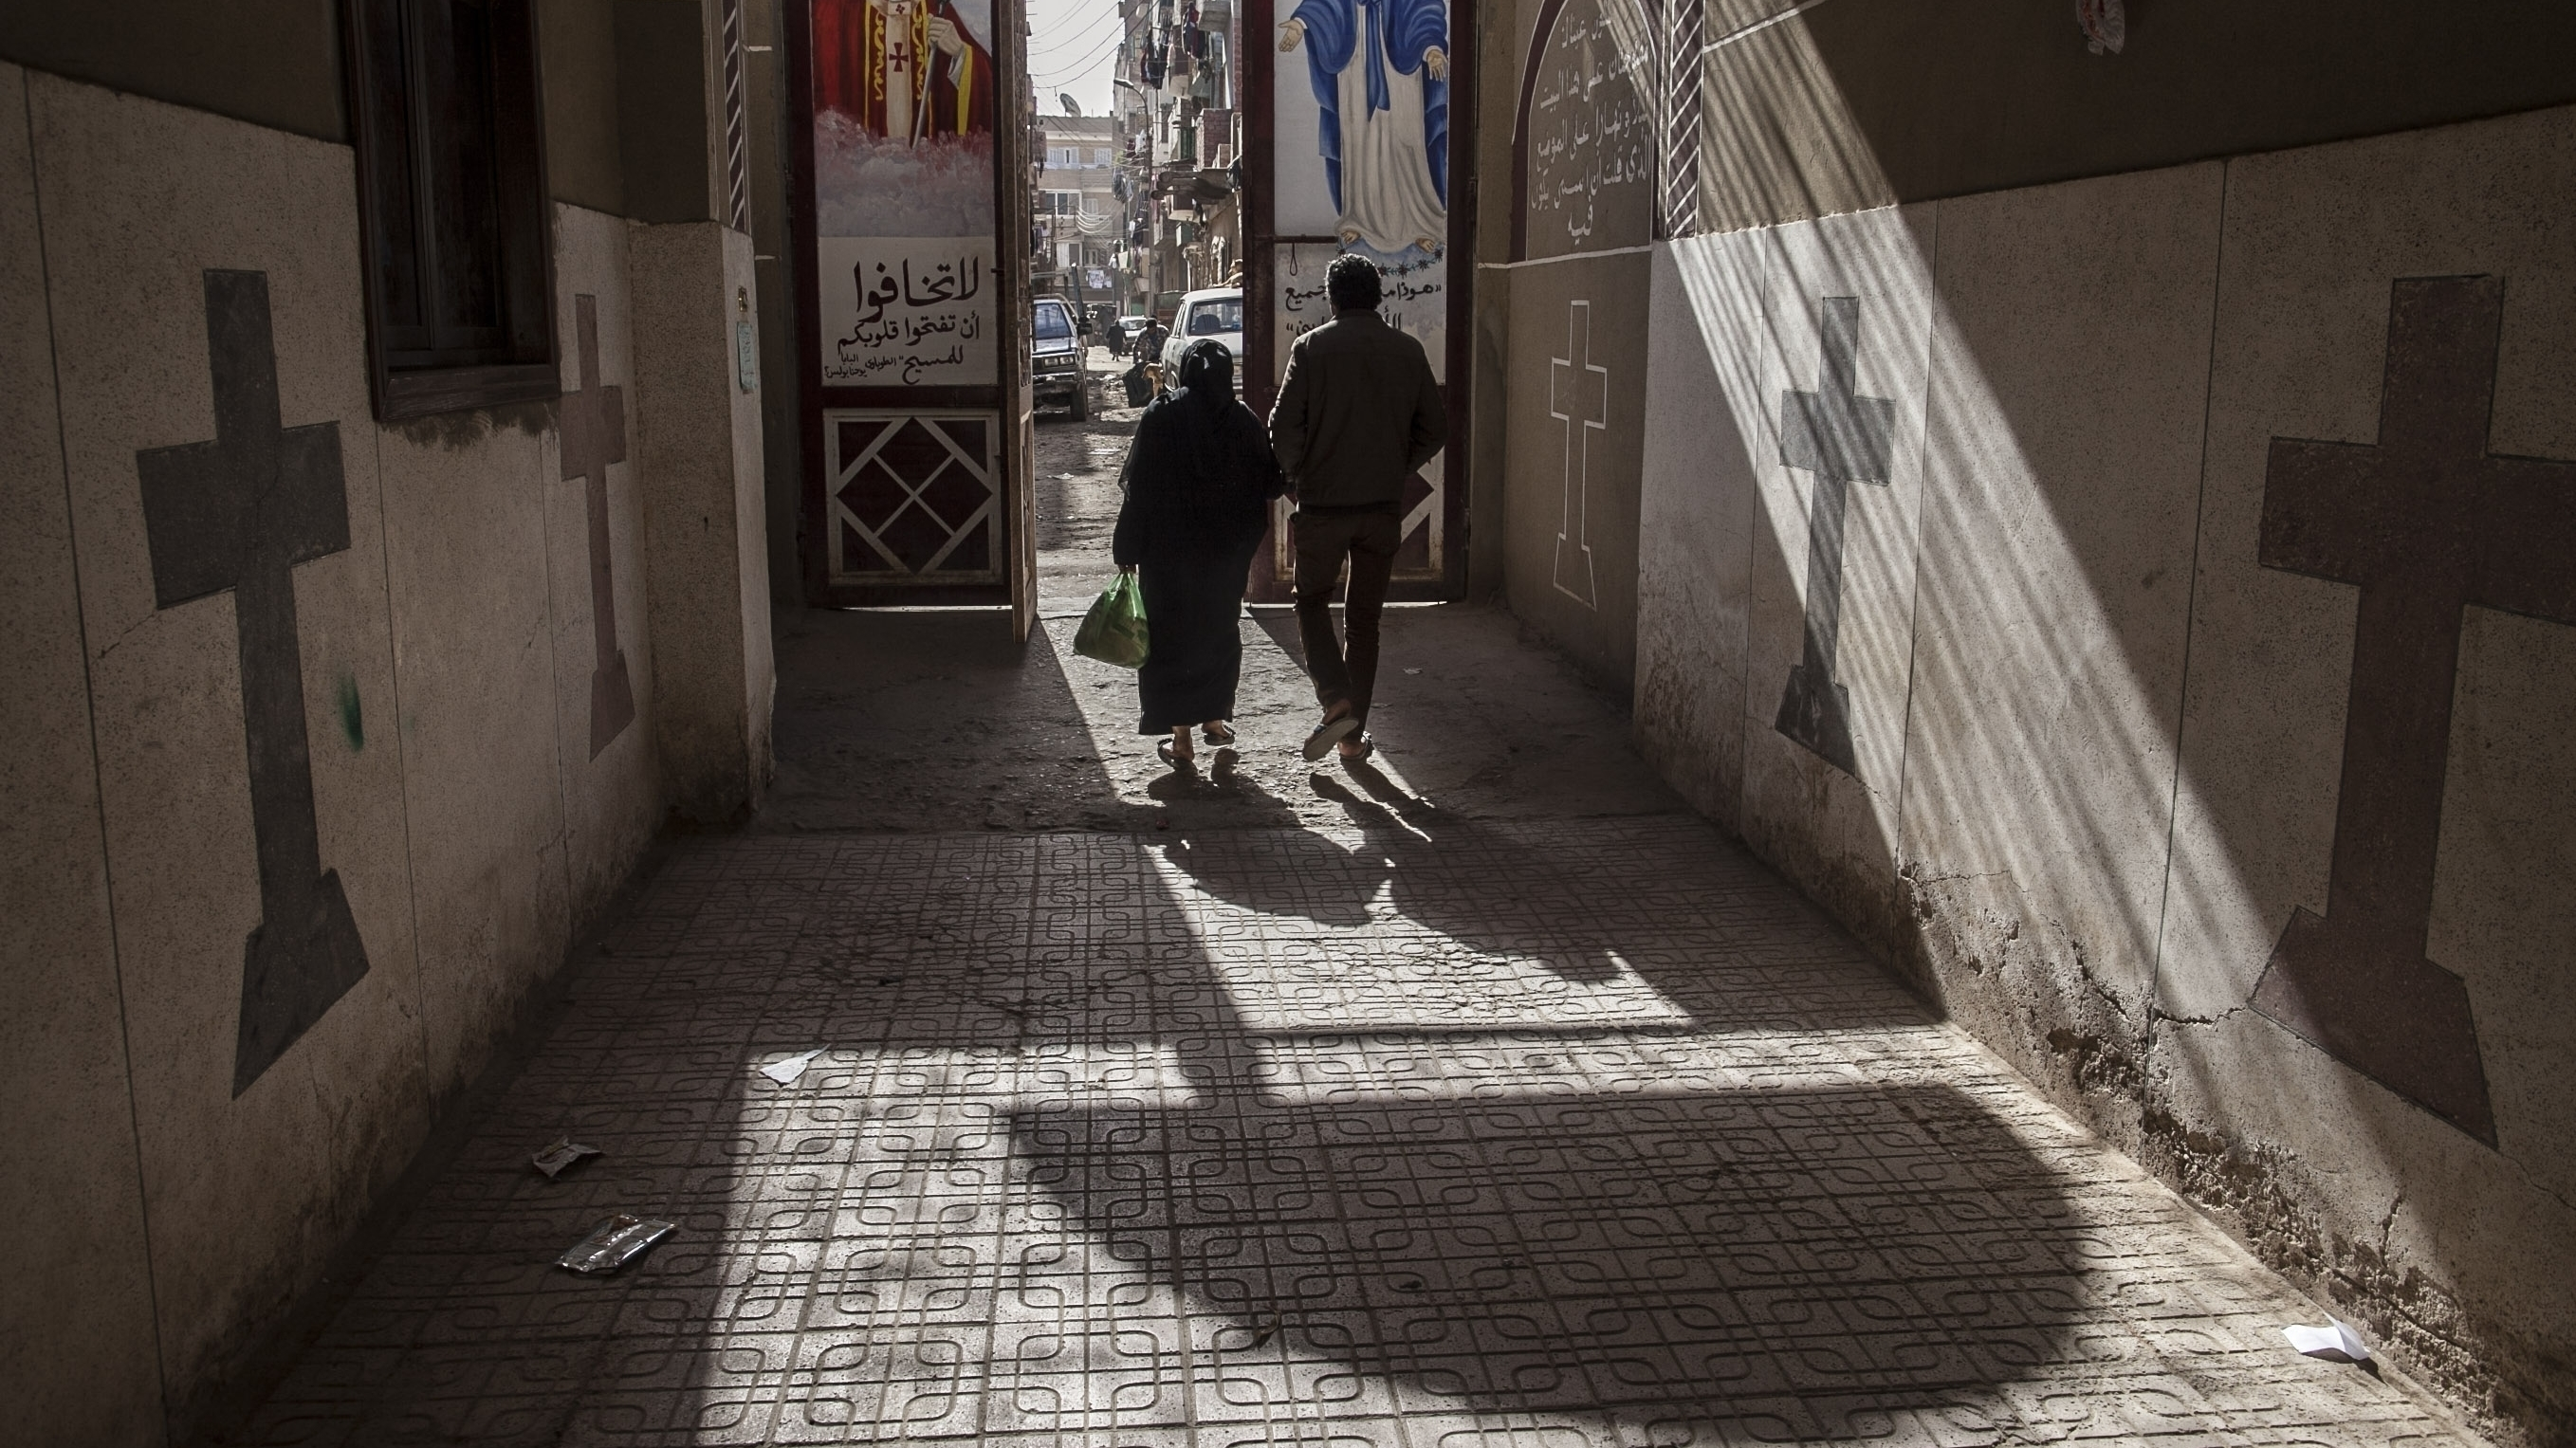 Egypt Christians Attack: President el-Sisi Calls For Security Meeting